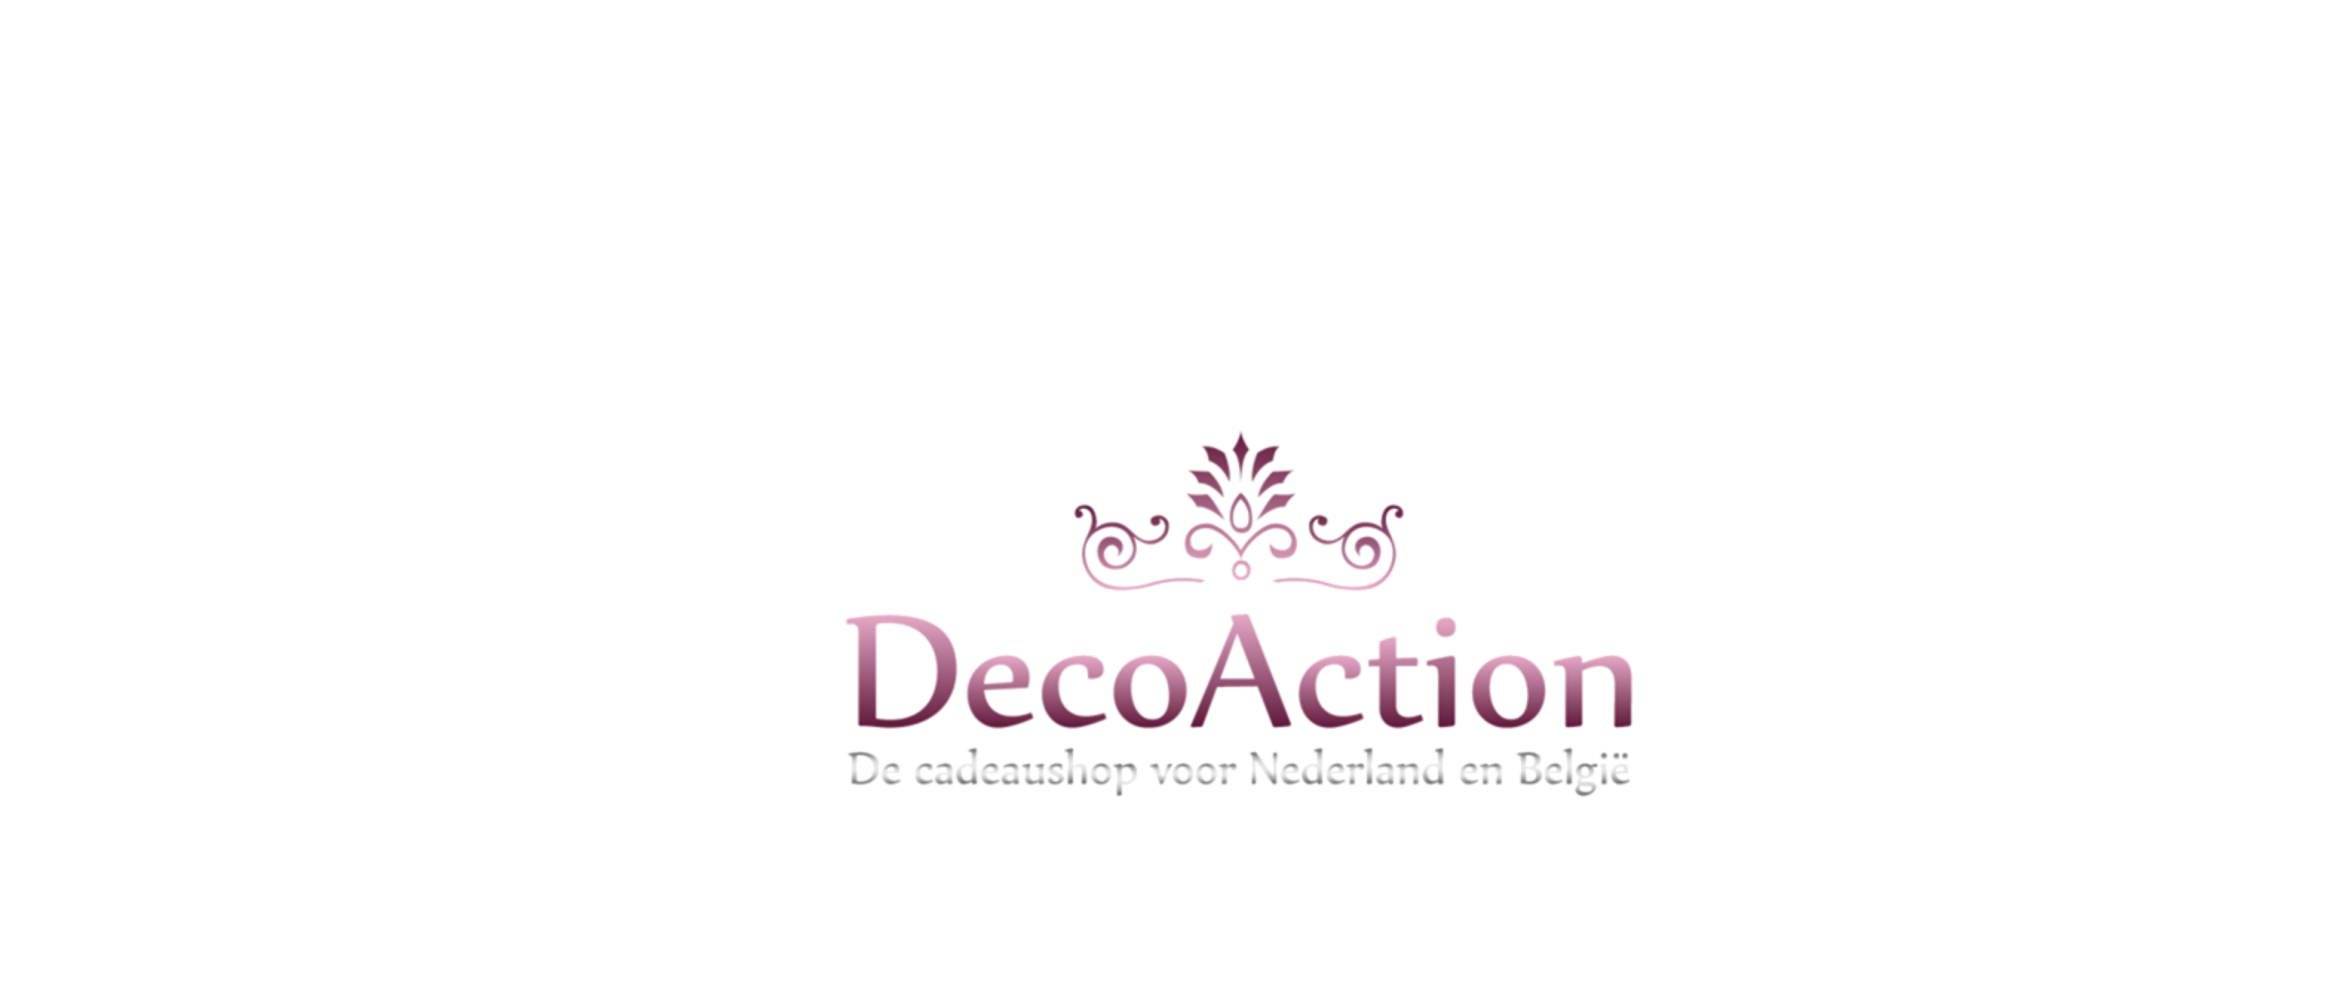 Decoaction.be